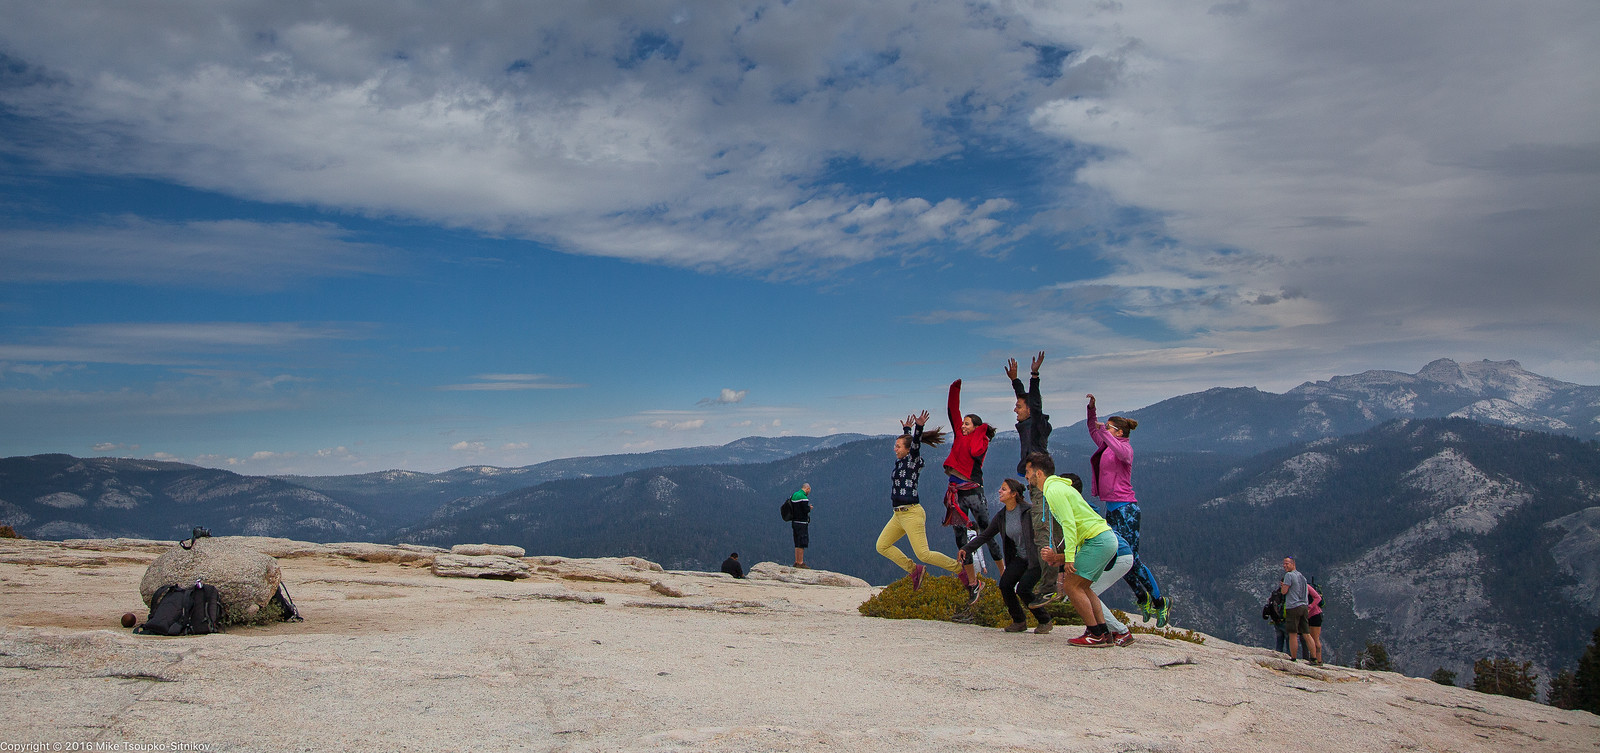 Sentinel Dome in Yosemite